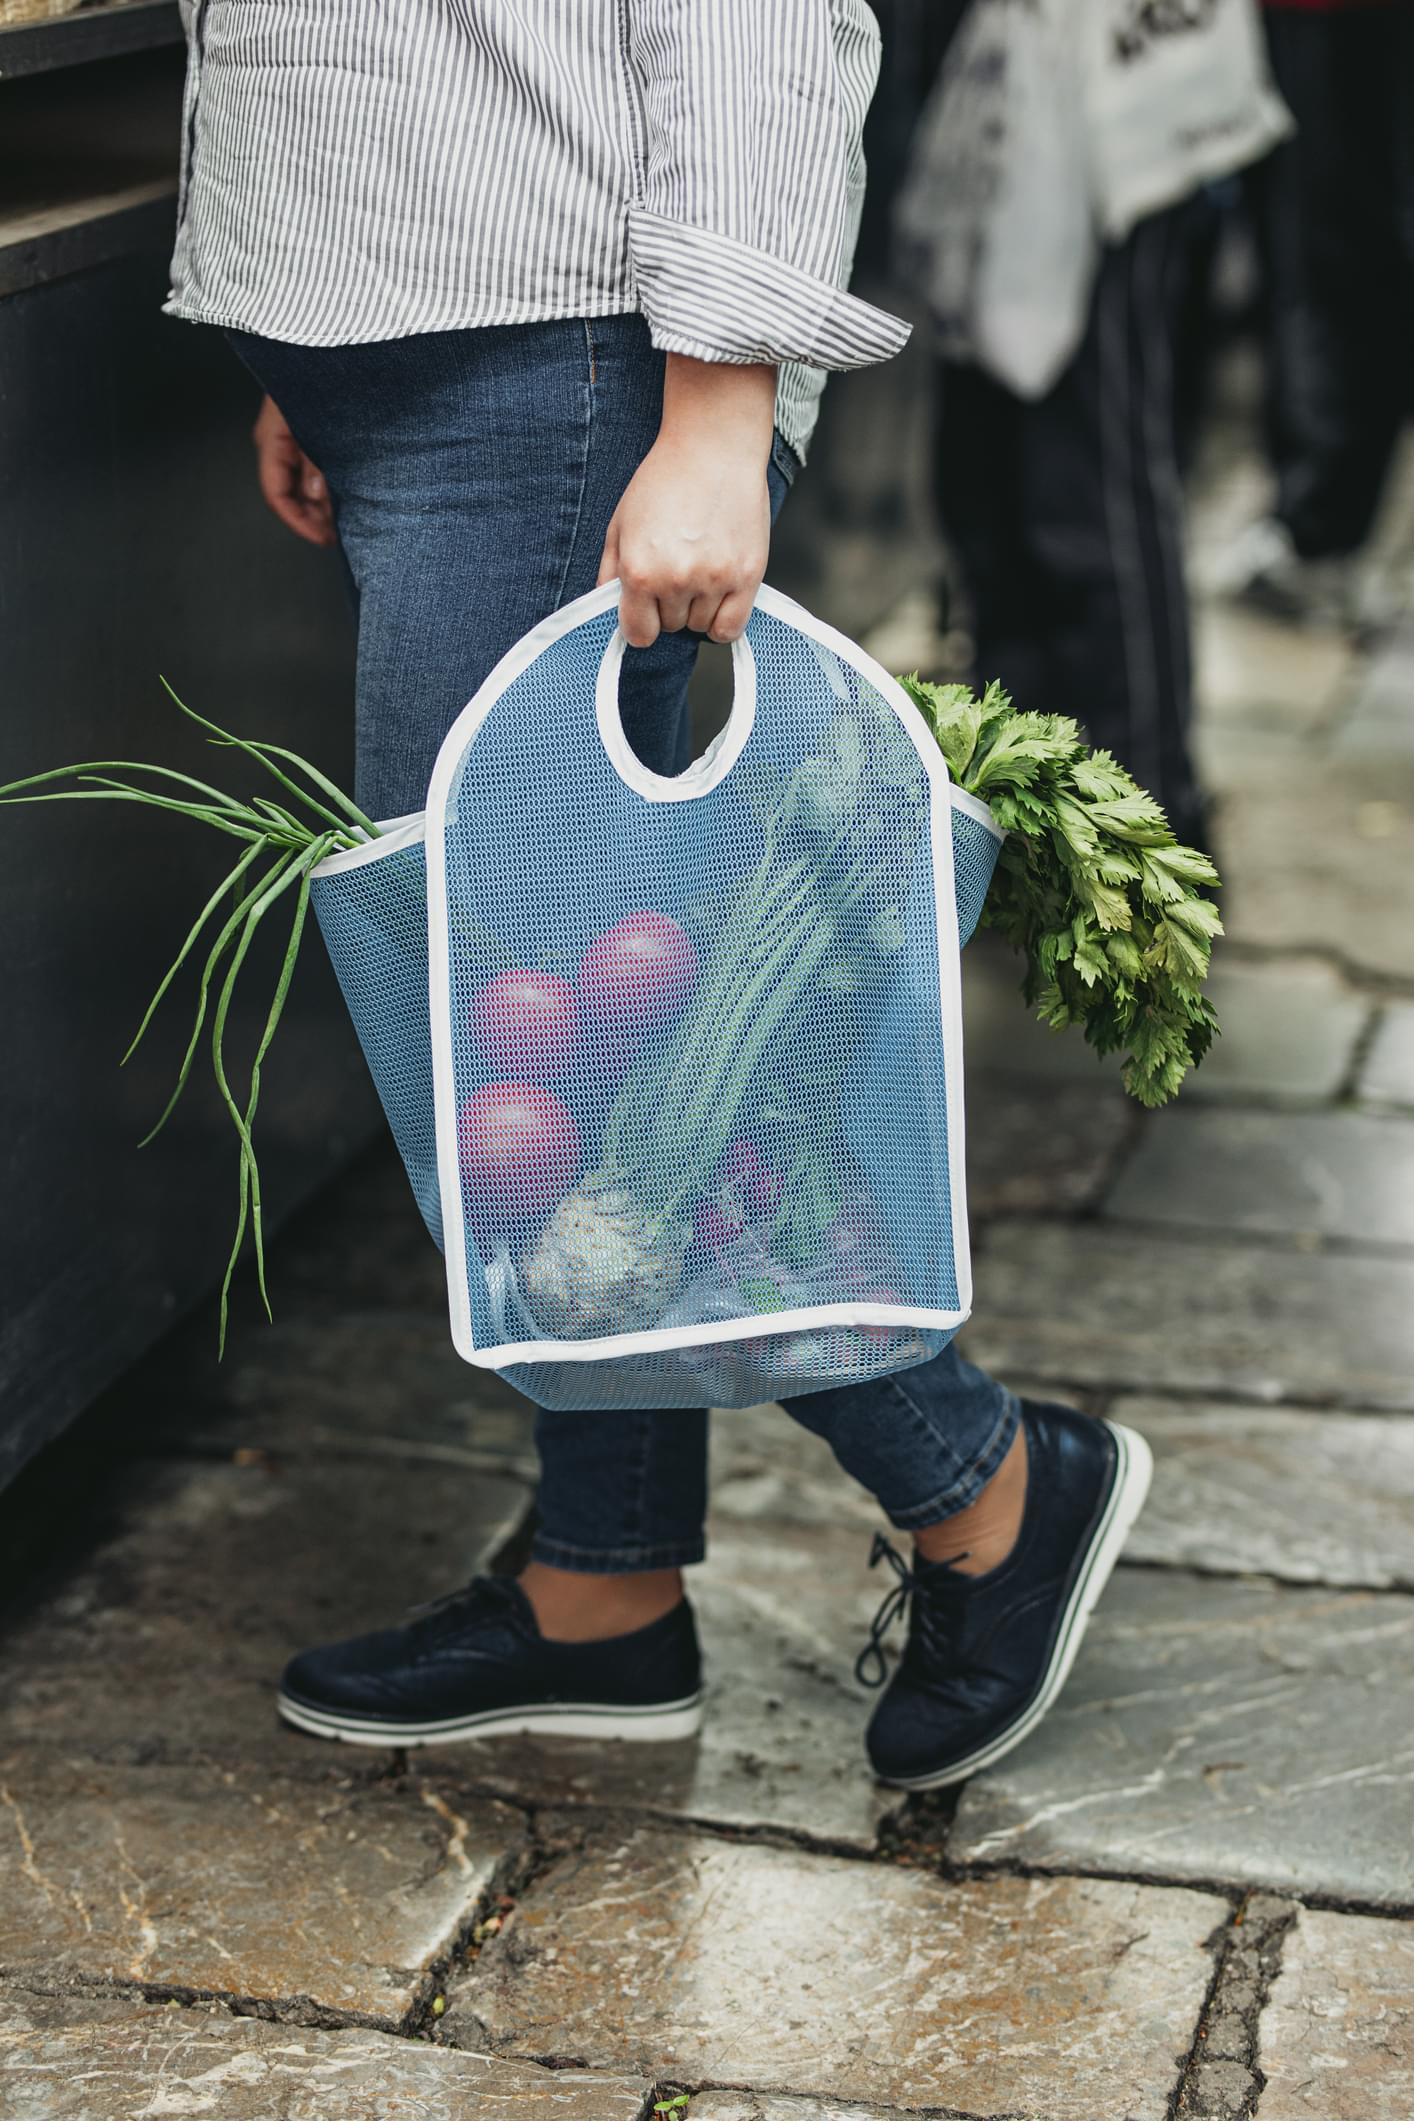 Buying Locally Sourced, Organic Fruit and Vegetables: an Anoymous Woman Holding a Bag Full of Food